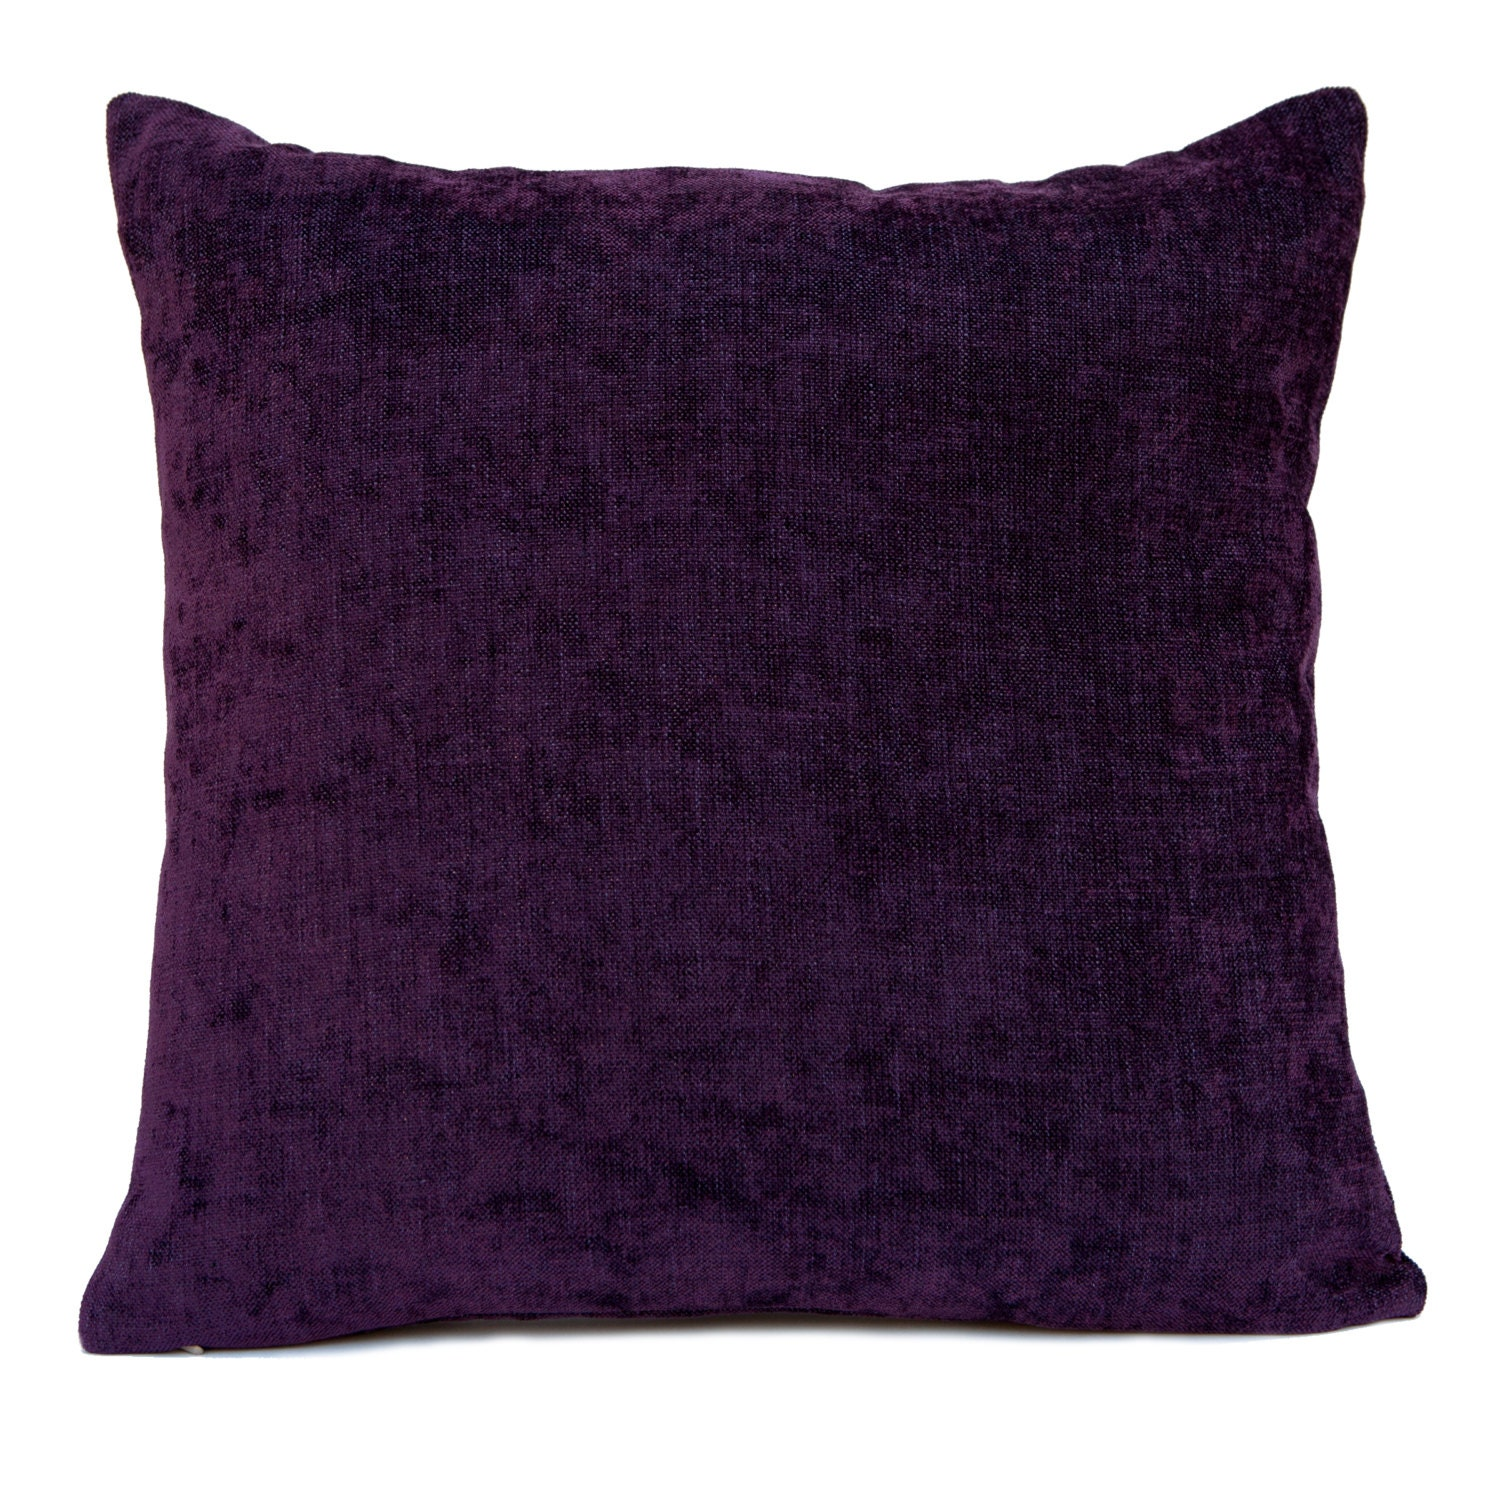 Purple Decorative Pillow : Dark Purple Pillow Throw Pillow Cover Decorative Pillow